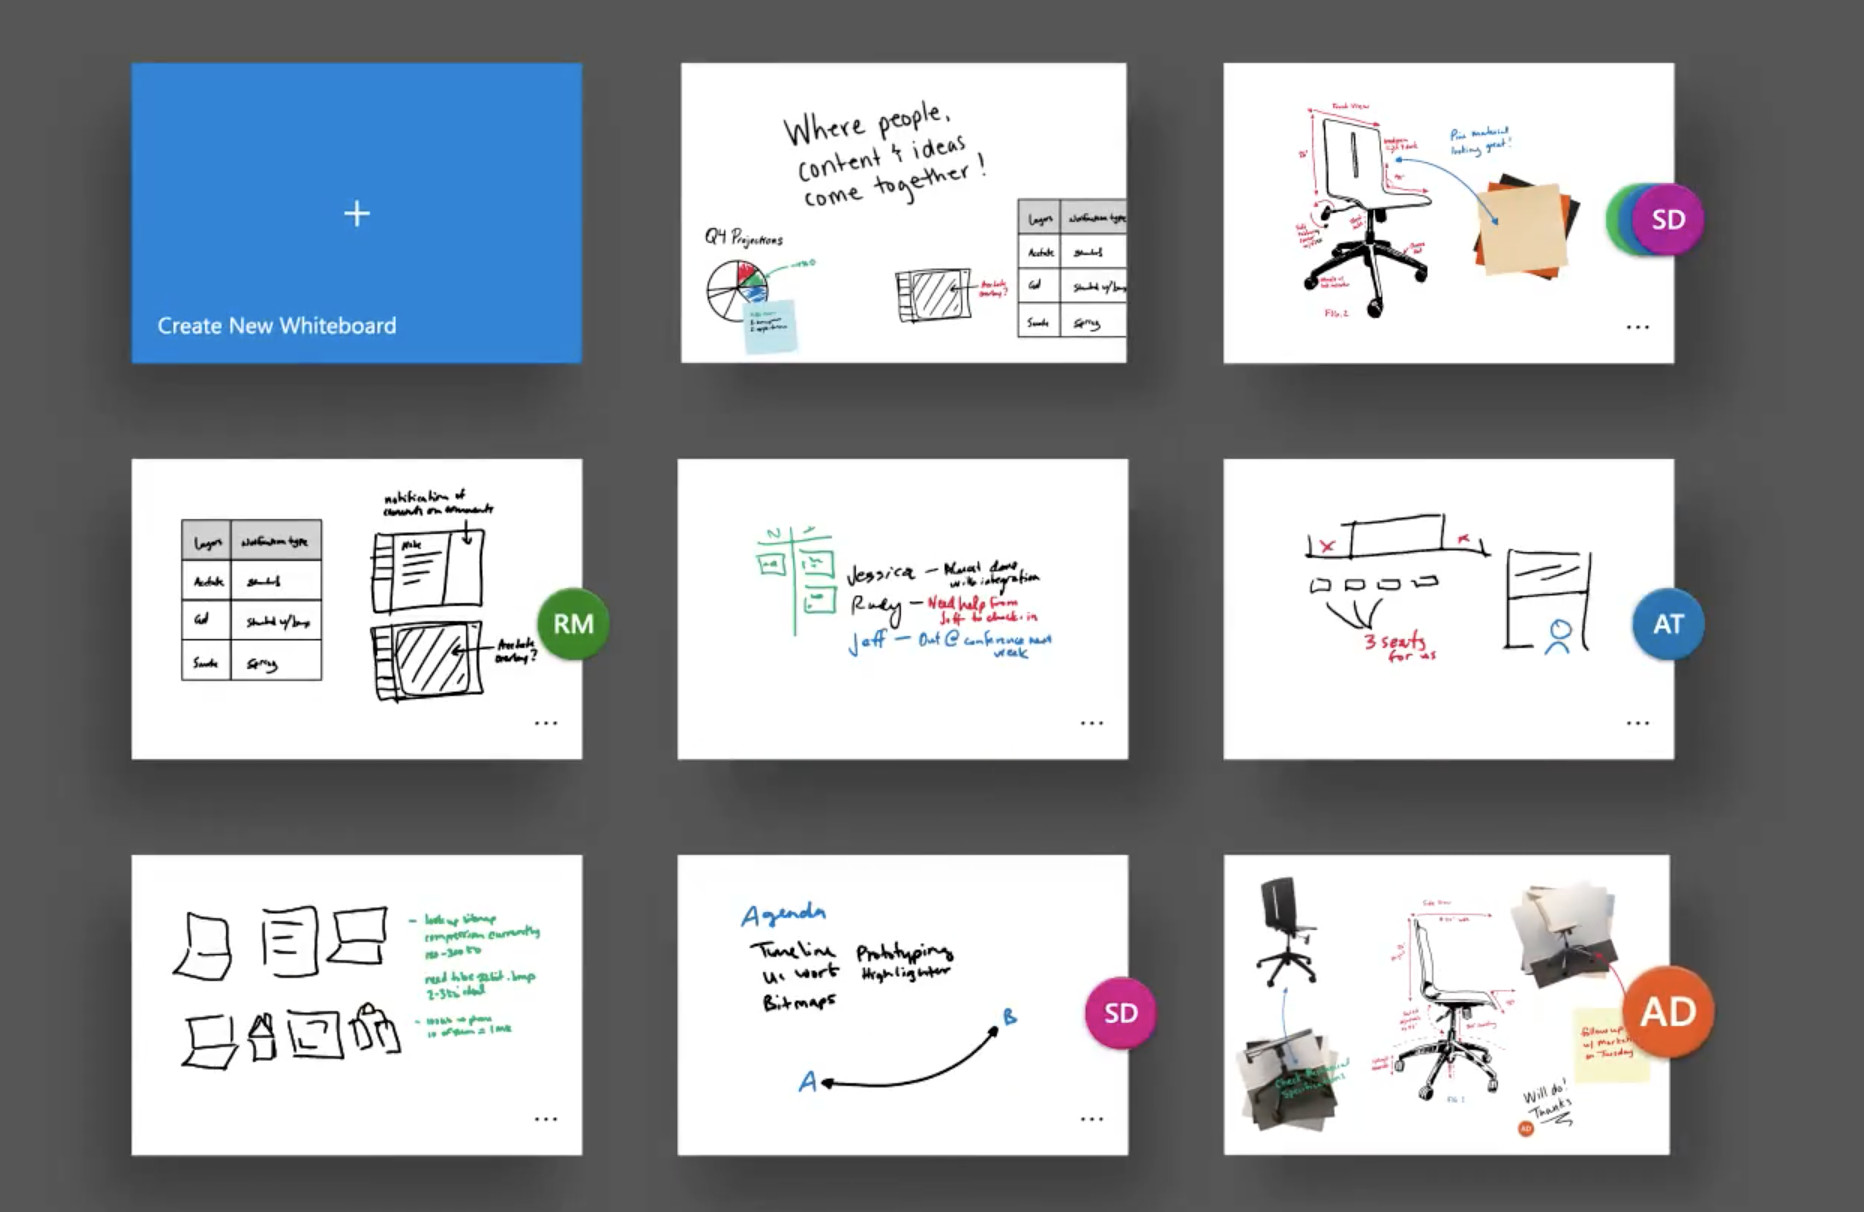 Microsoft opens up its Windows 10 Whiteboard app for public preview